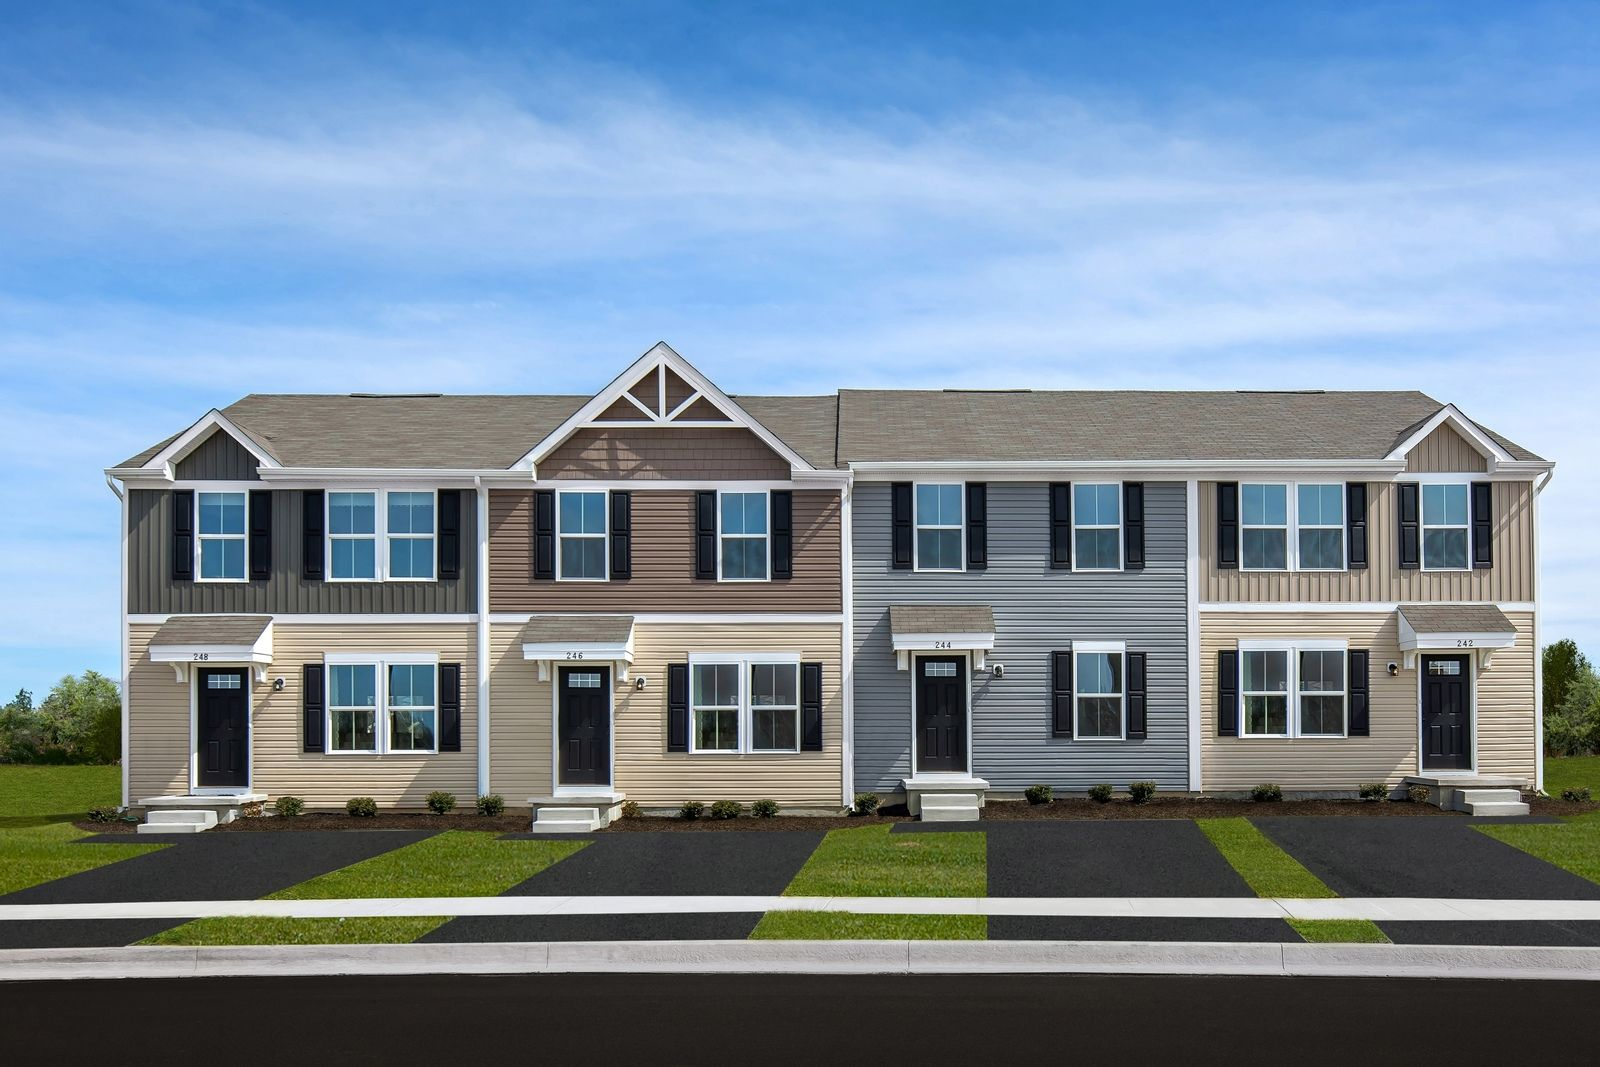 WELCOME TO RED HILL:The only opportunity to own a new townhome with an included unfinished basement for less than your rent - just minutes from Newark and I-95.Click here toschedule your appointment today.